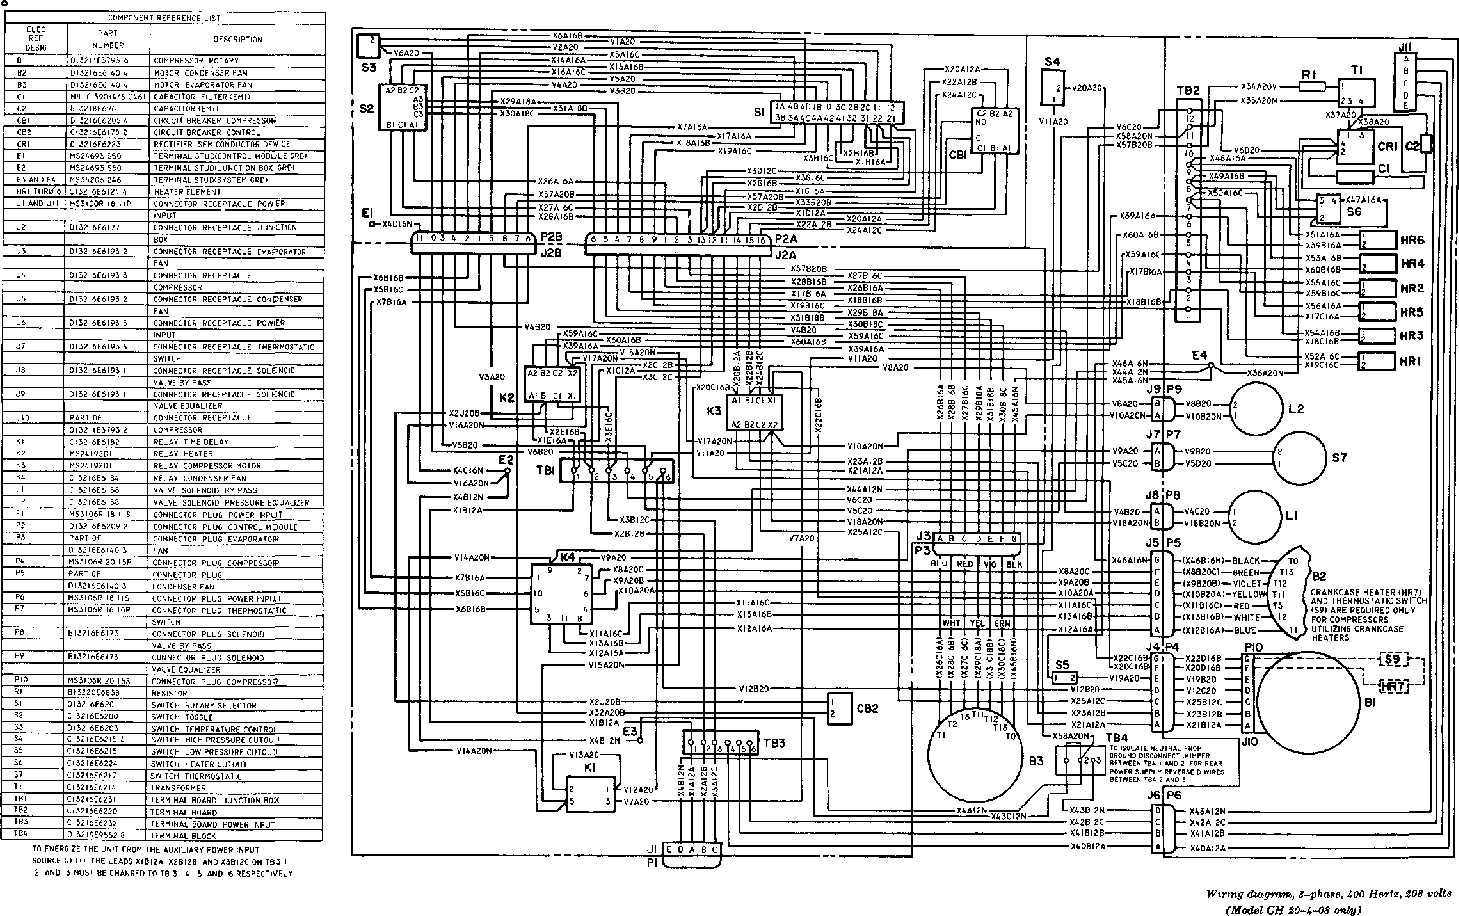 Air Conditioning Systems Schematic. on basic hvac ladder schematic #474747